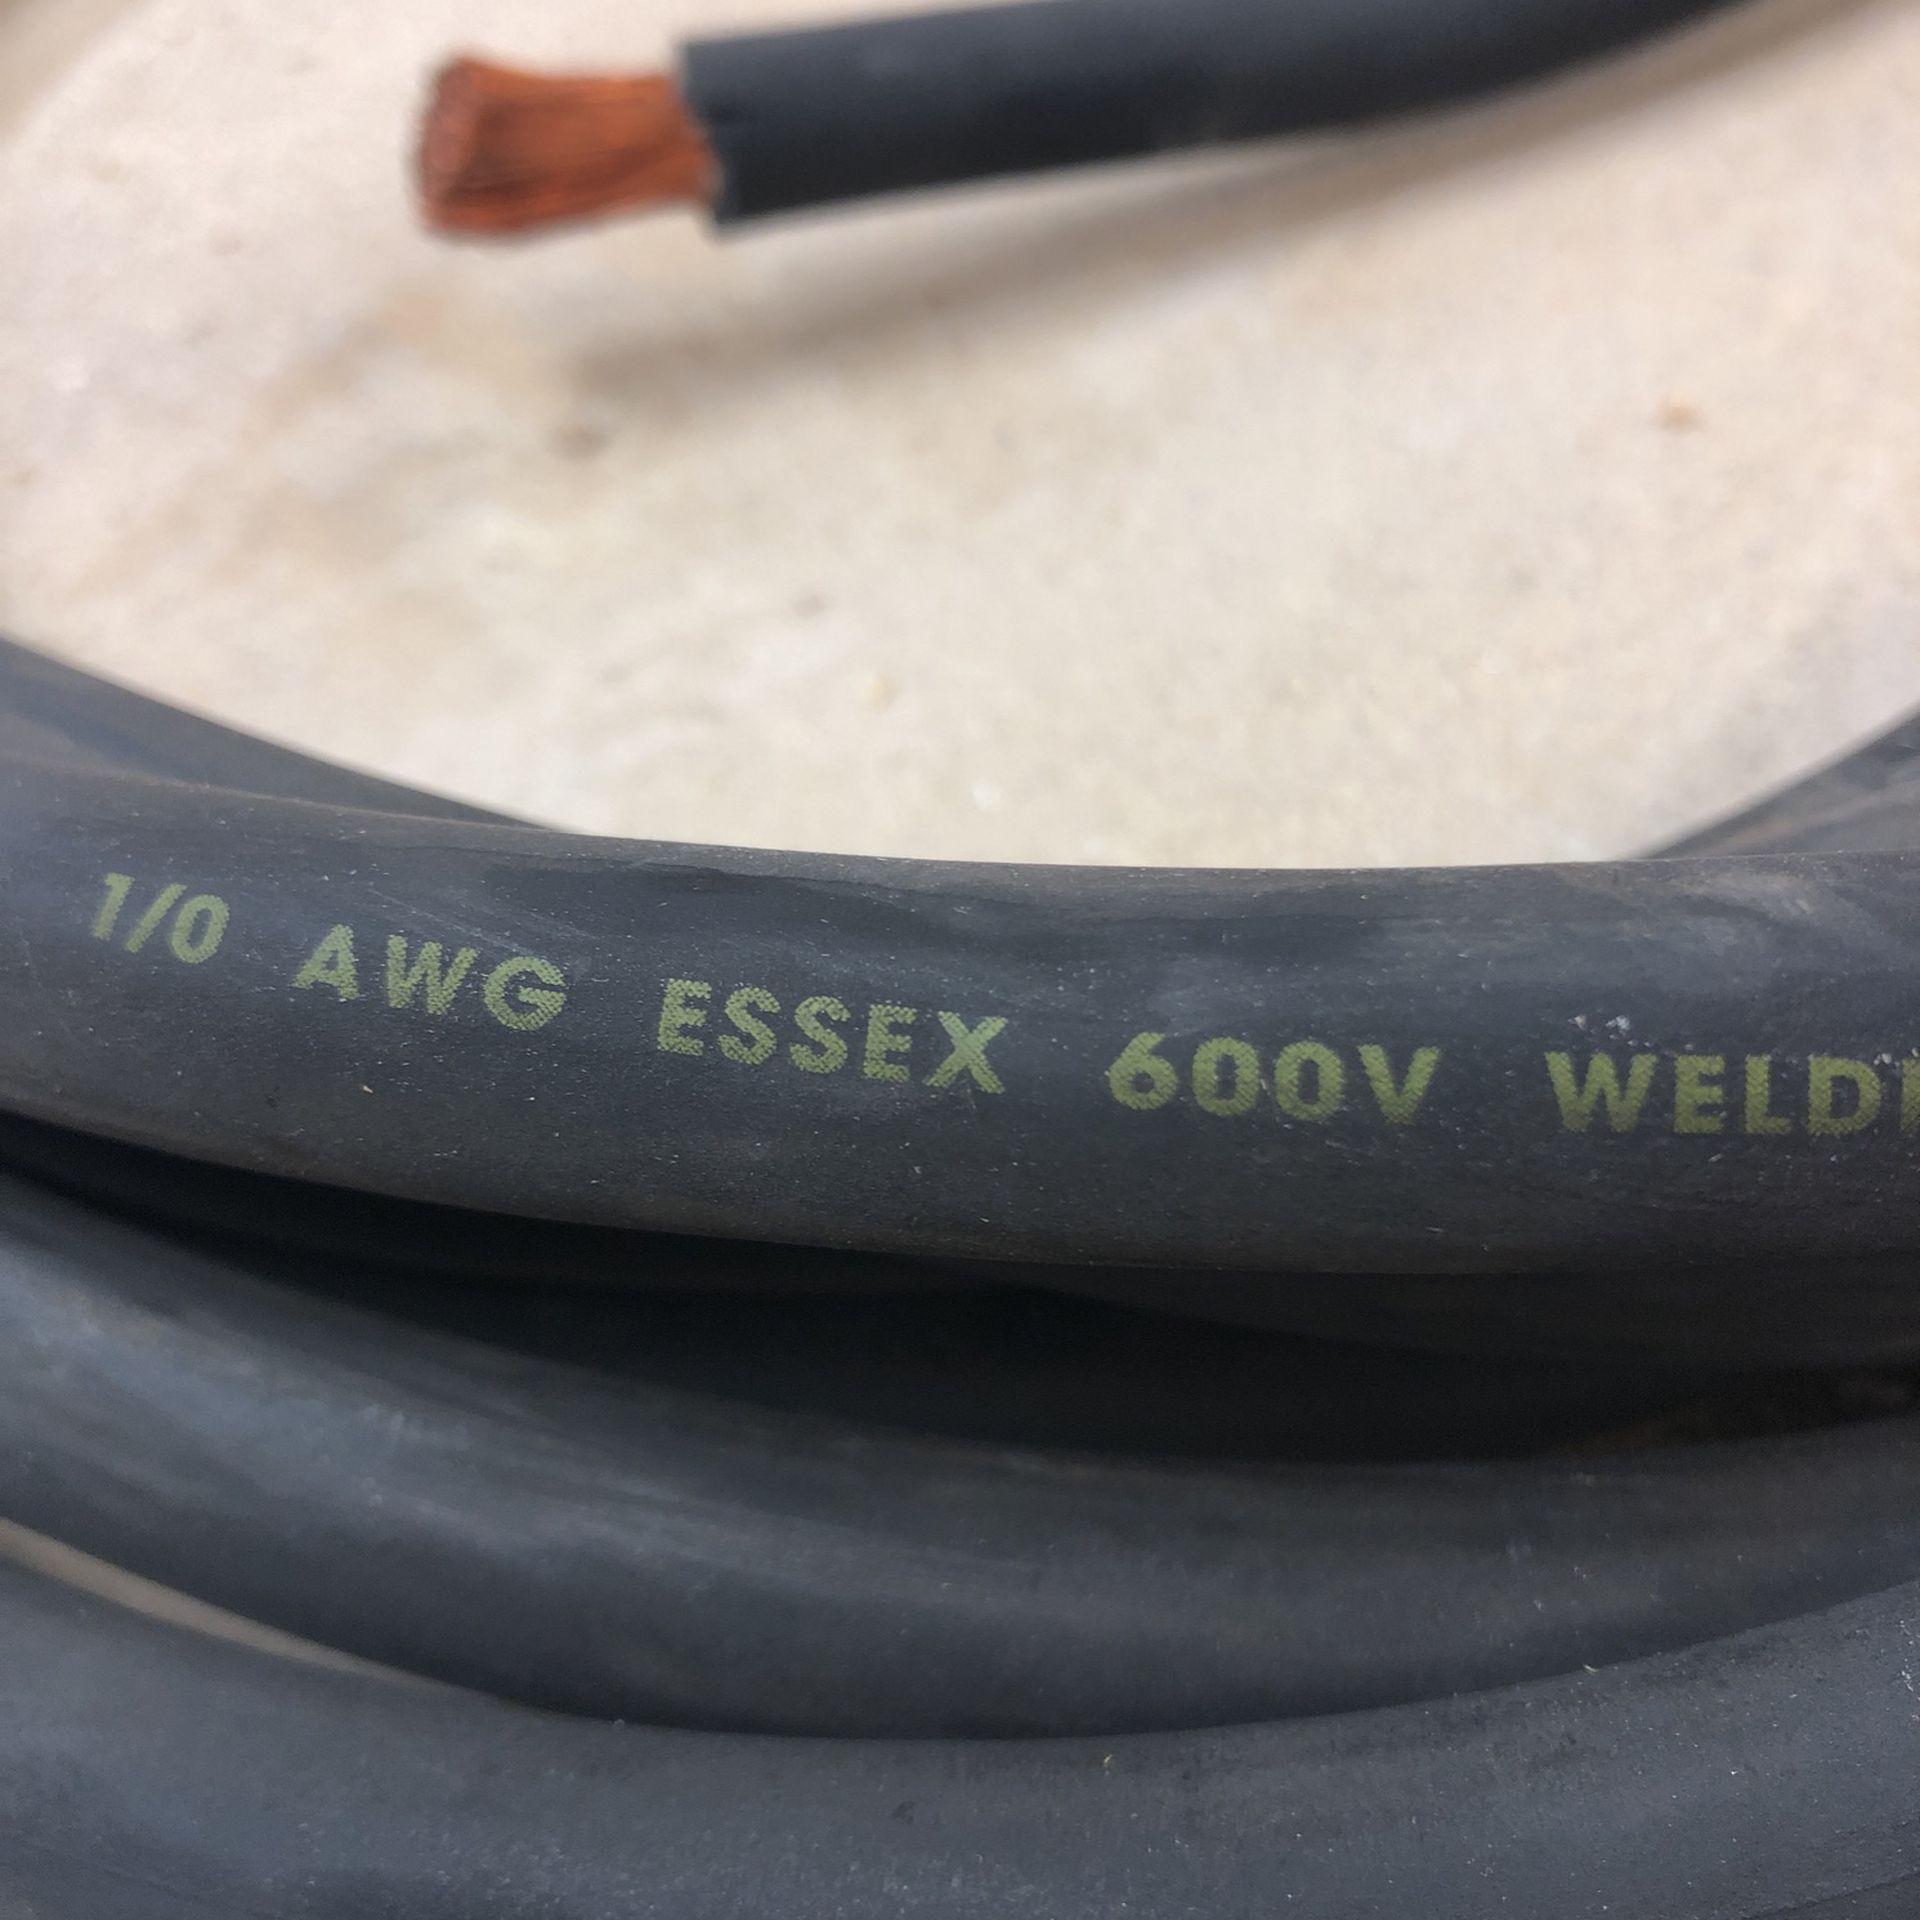 24 foot of copper welding cable